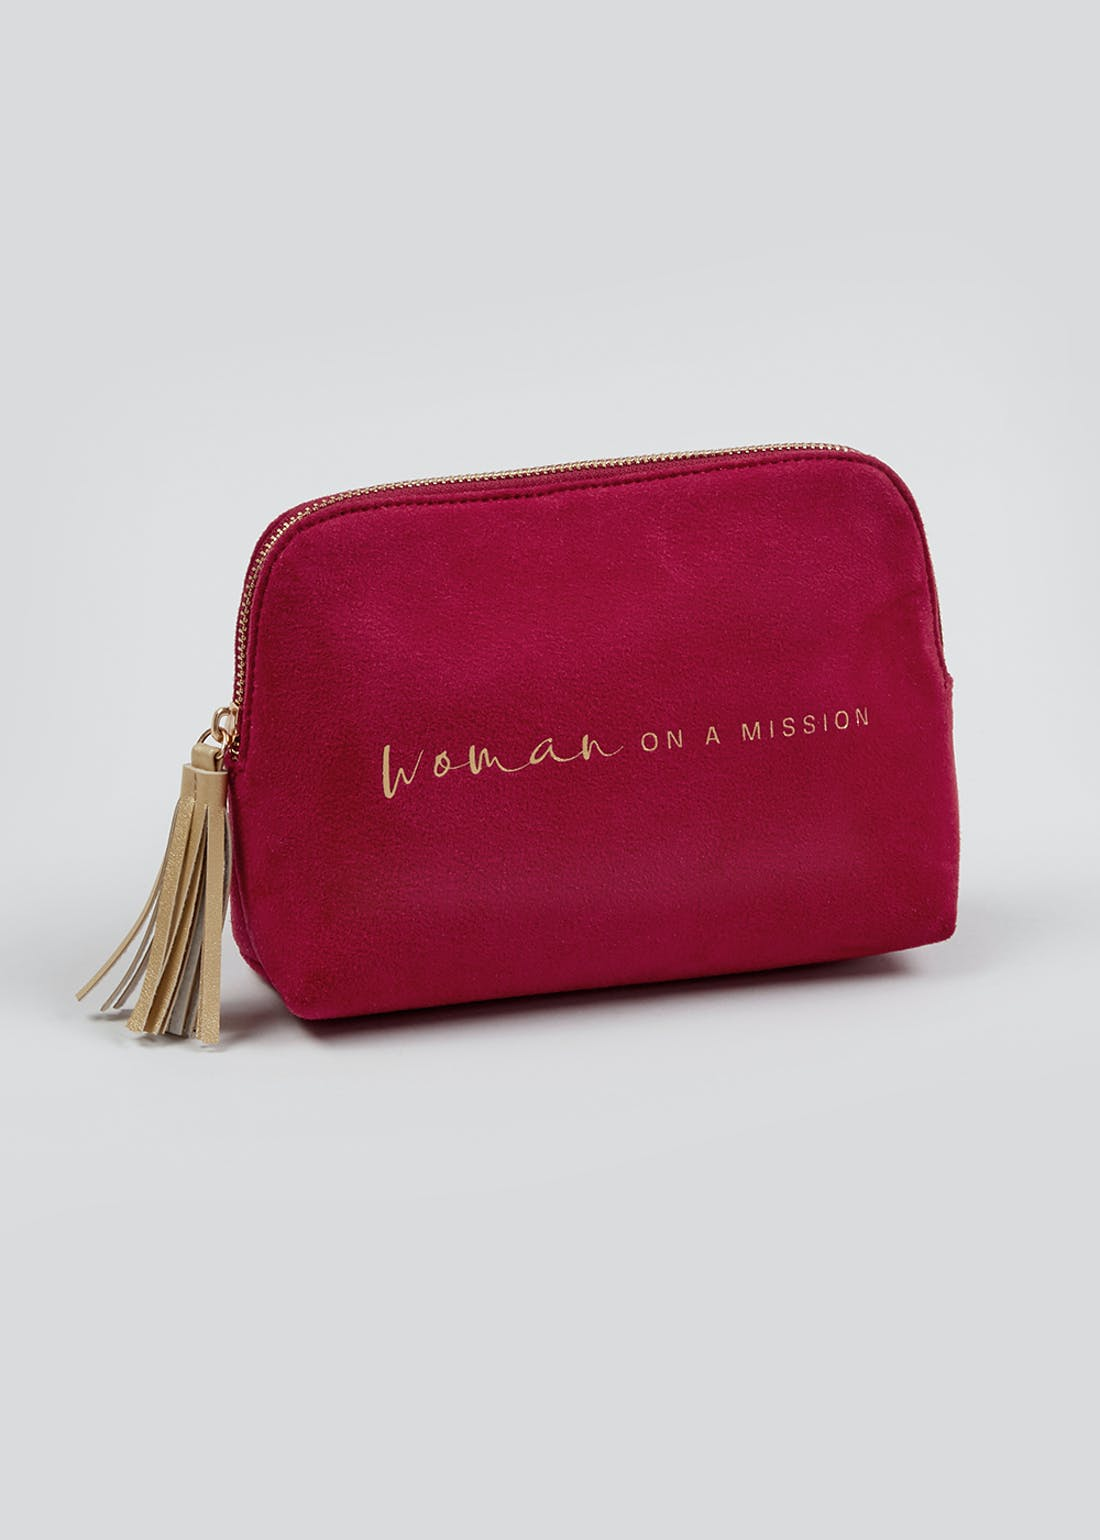 Woman on a Mission Make Up Bag (20cm x 14.5cm x 6cm)